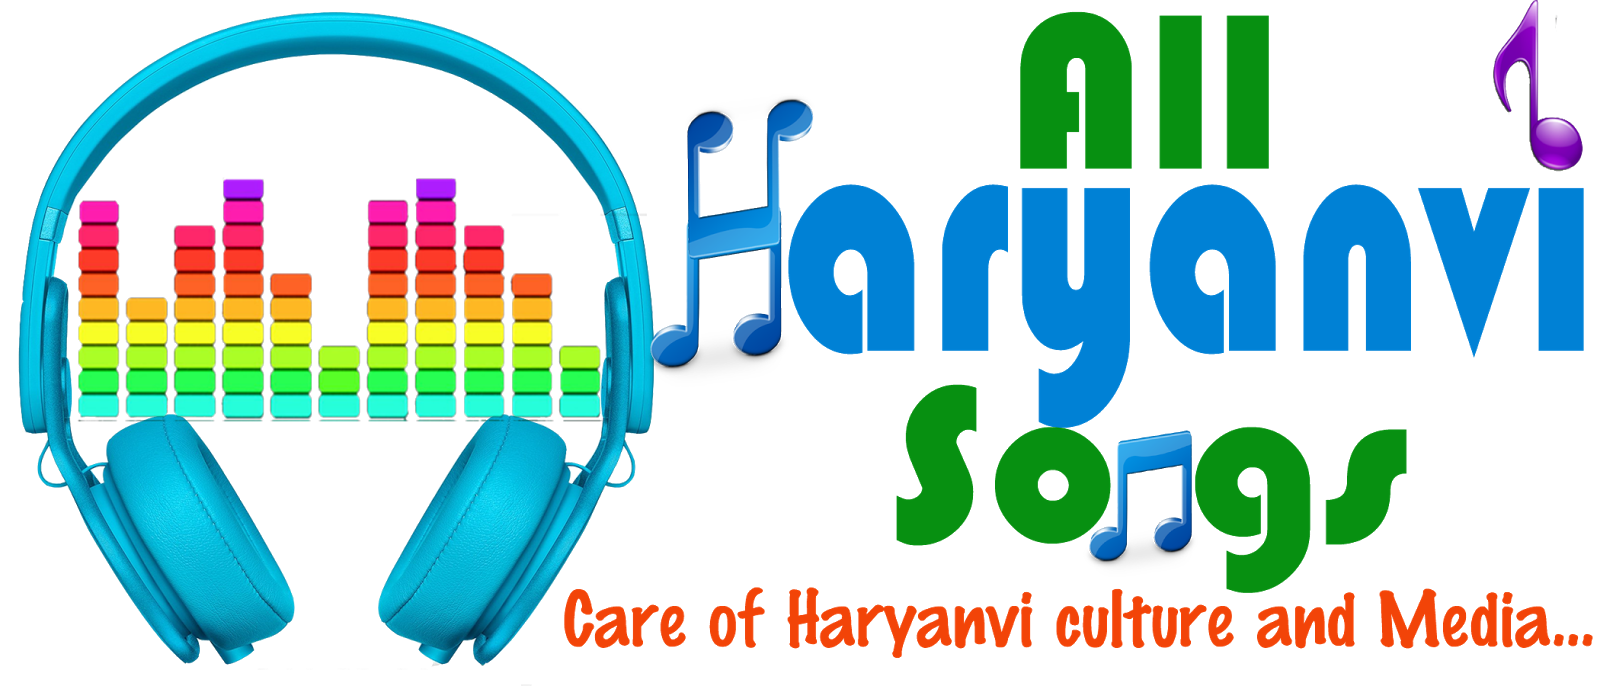 All Haryanvi Songs at a Glance